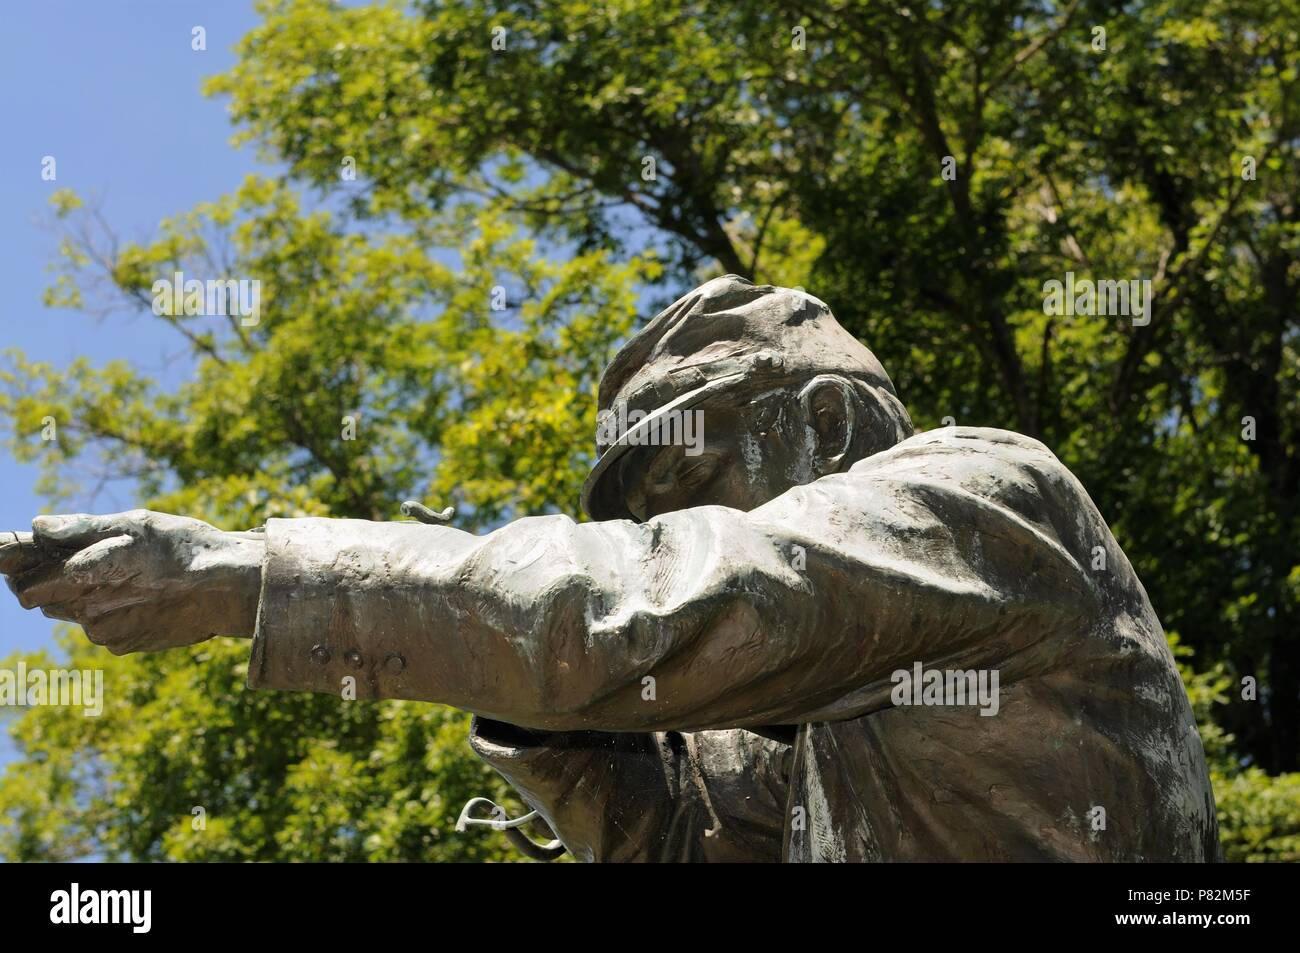 Statue of a union soldier honoring the soldiers who fought for Wisconsin at the siege of Vicksburg during the Civil War. - Stock Image